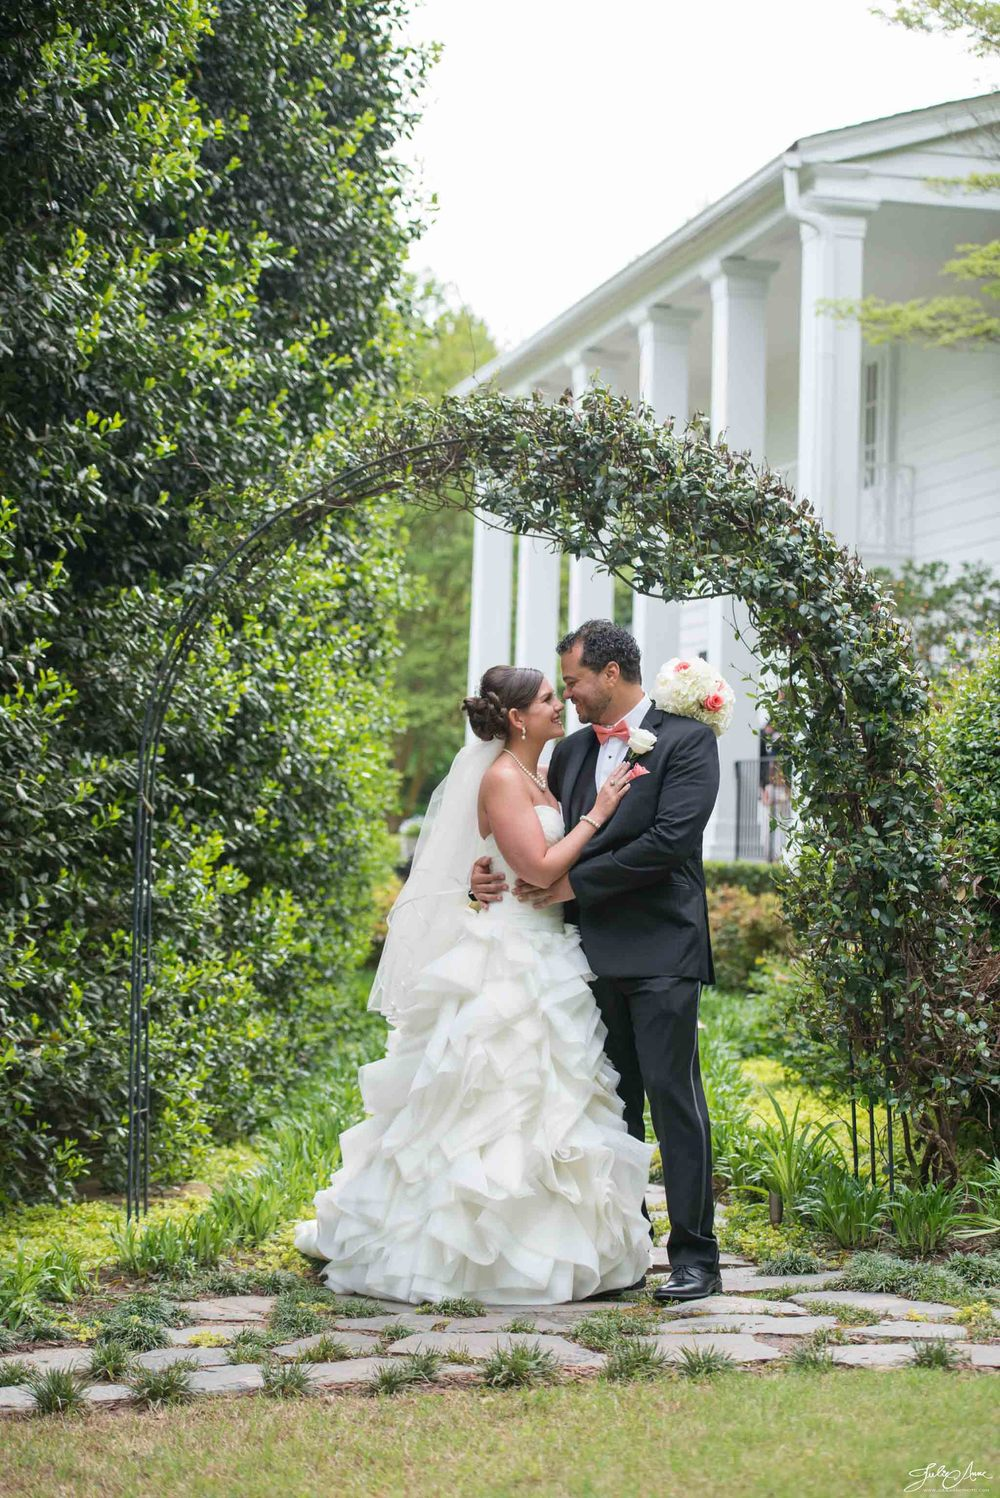 magic moments little garden wedding lawrenceville julie anne luxury fine art photographer (73).jpg